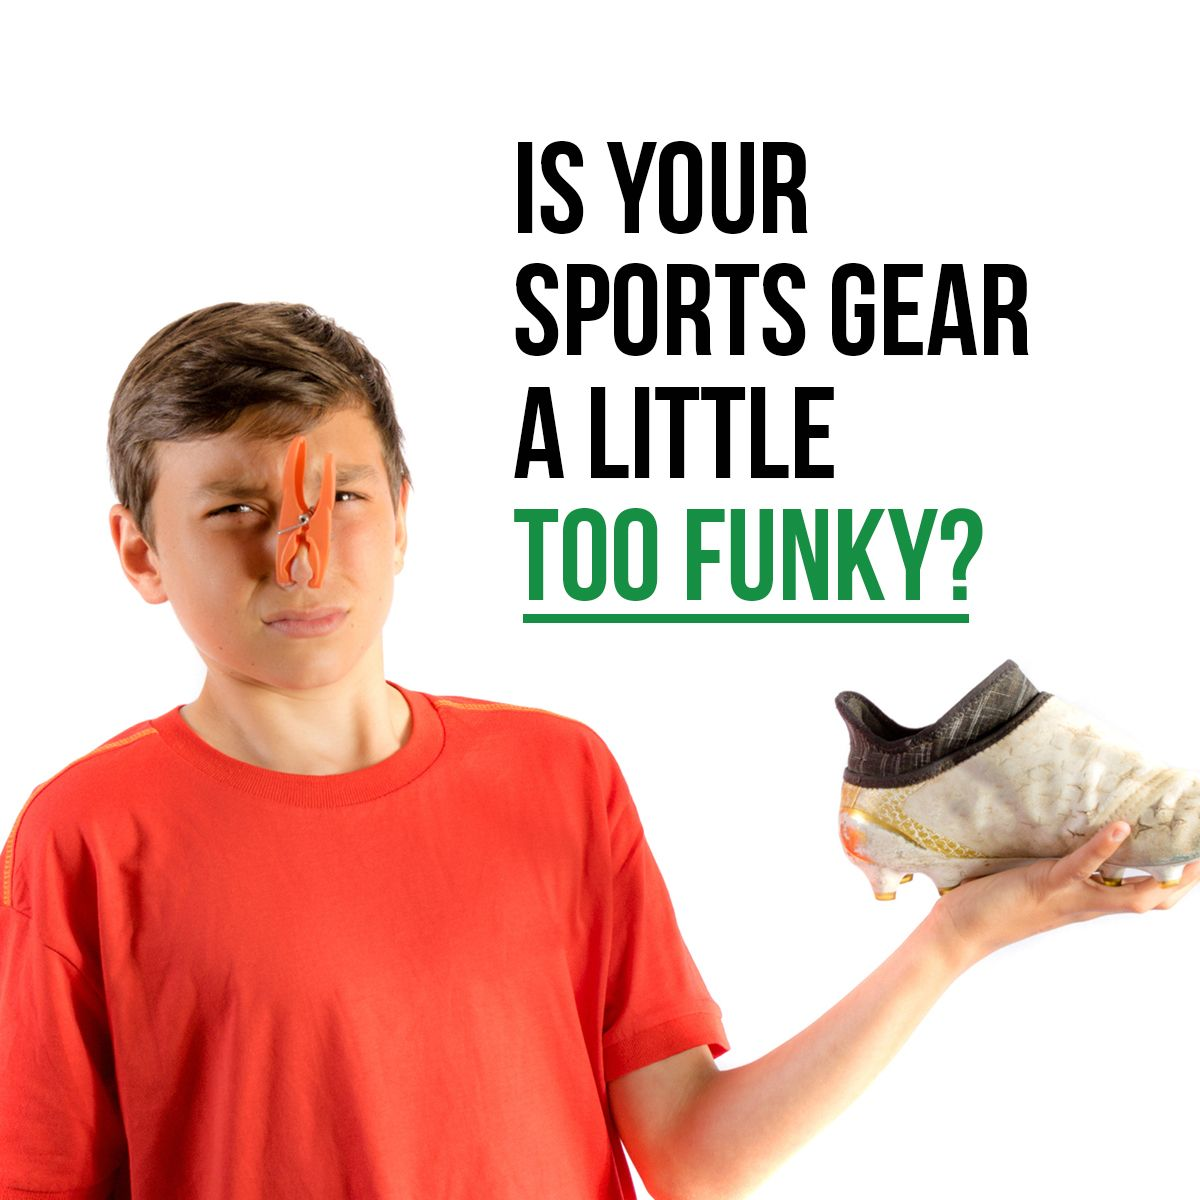 Is Your Sports Gear a Little Too Funky?